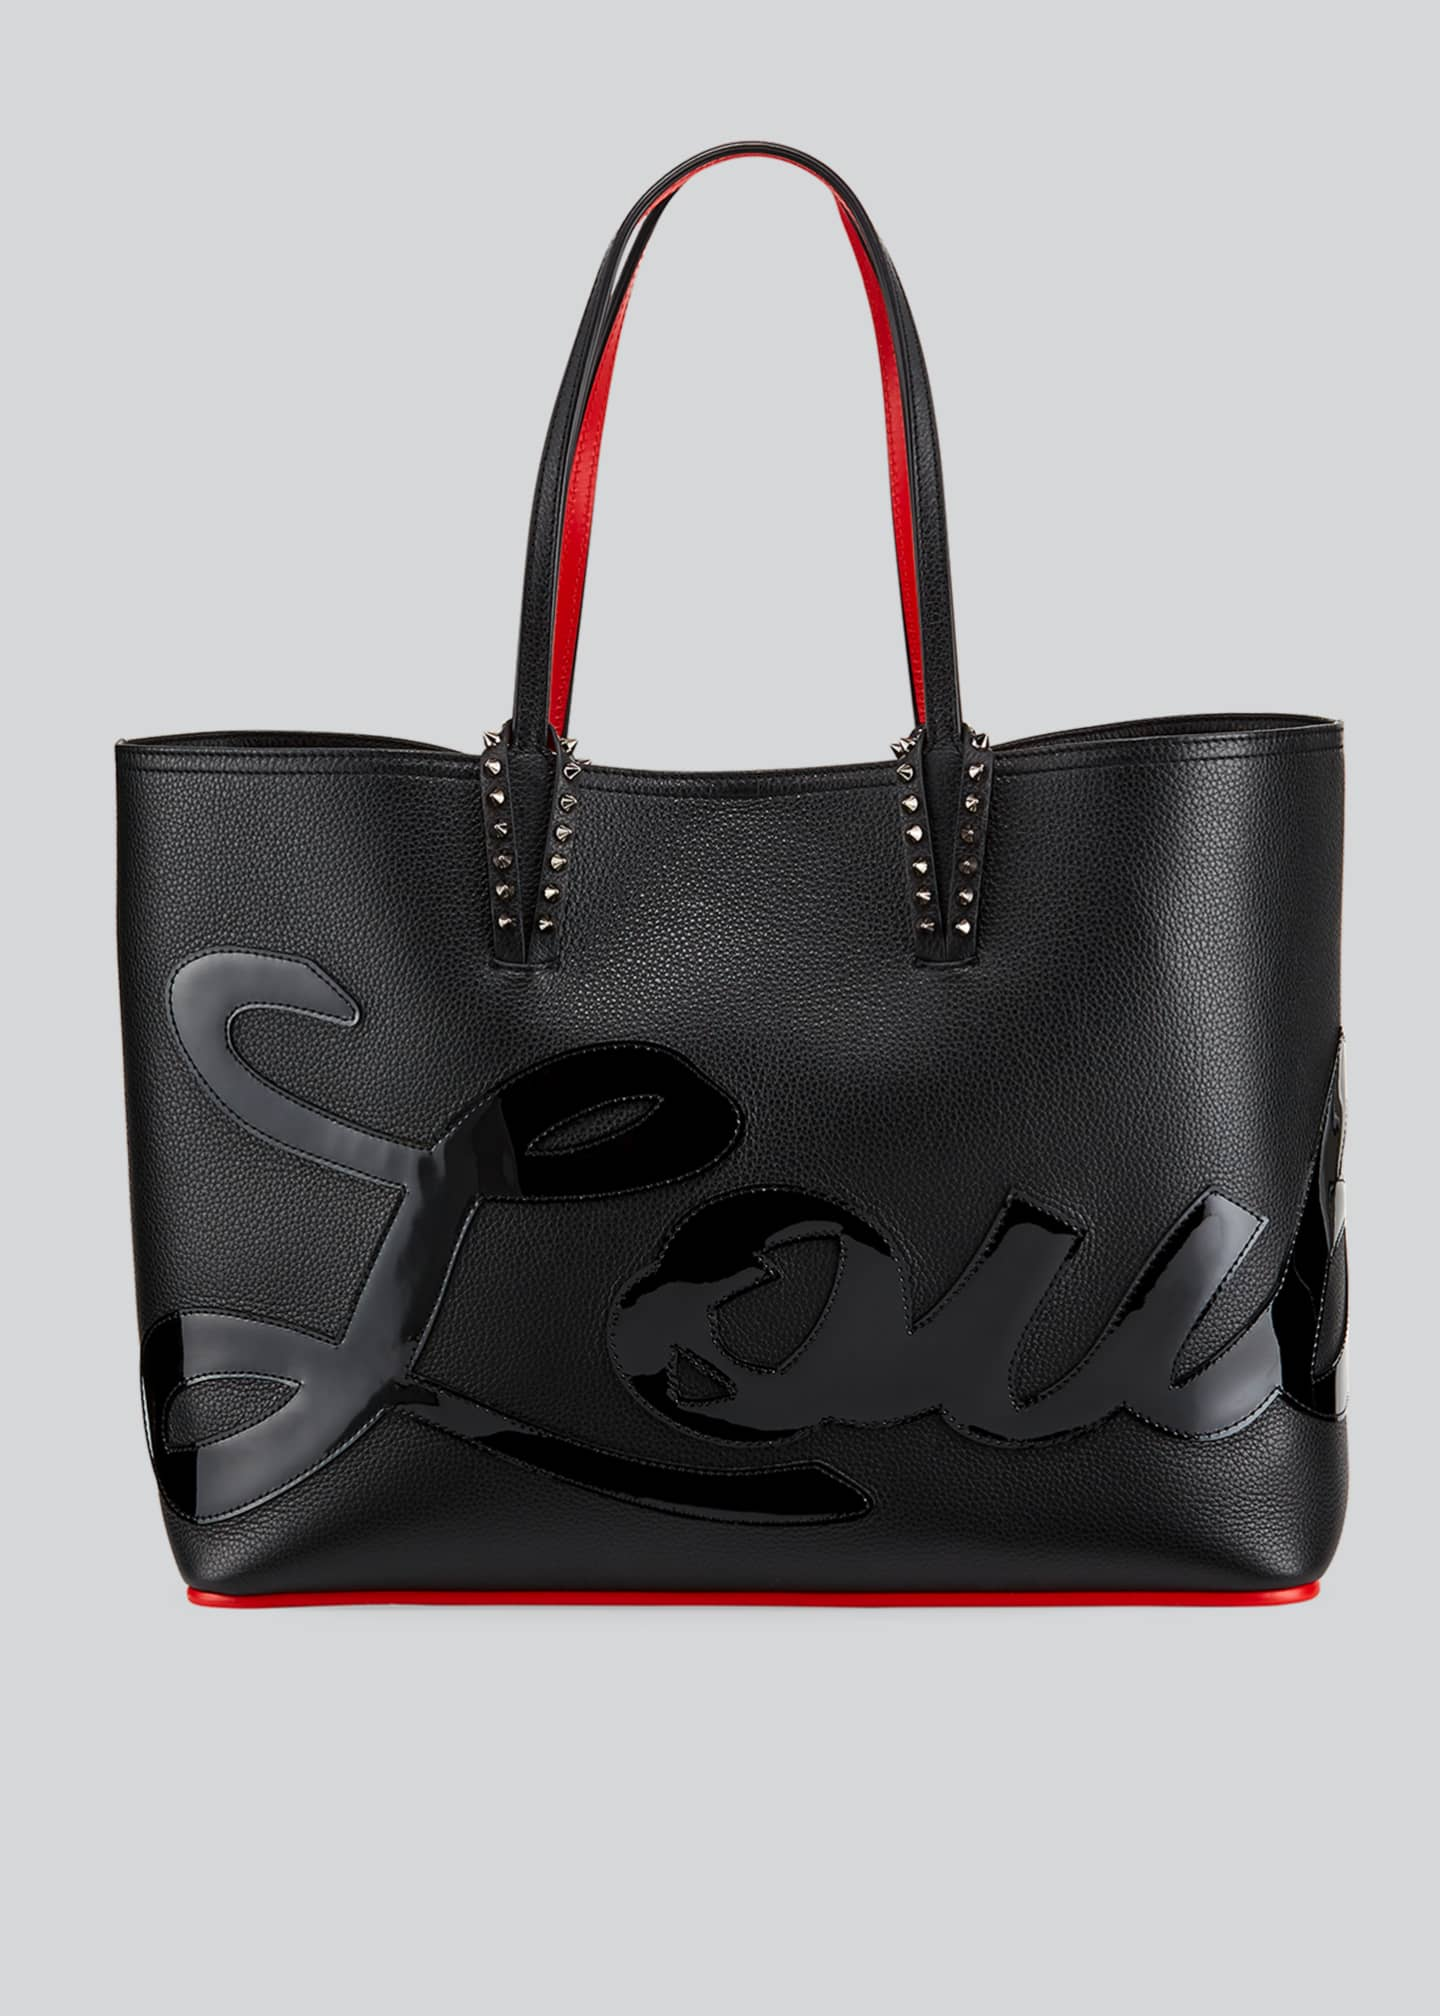 Christian Louboutin Cabata Logo Empire Leather Tote Bag